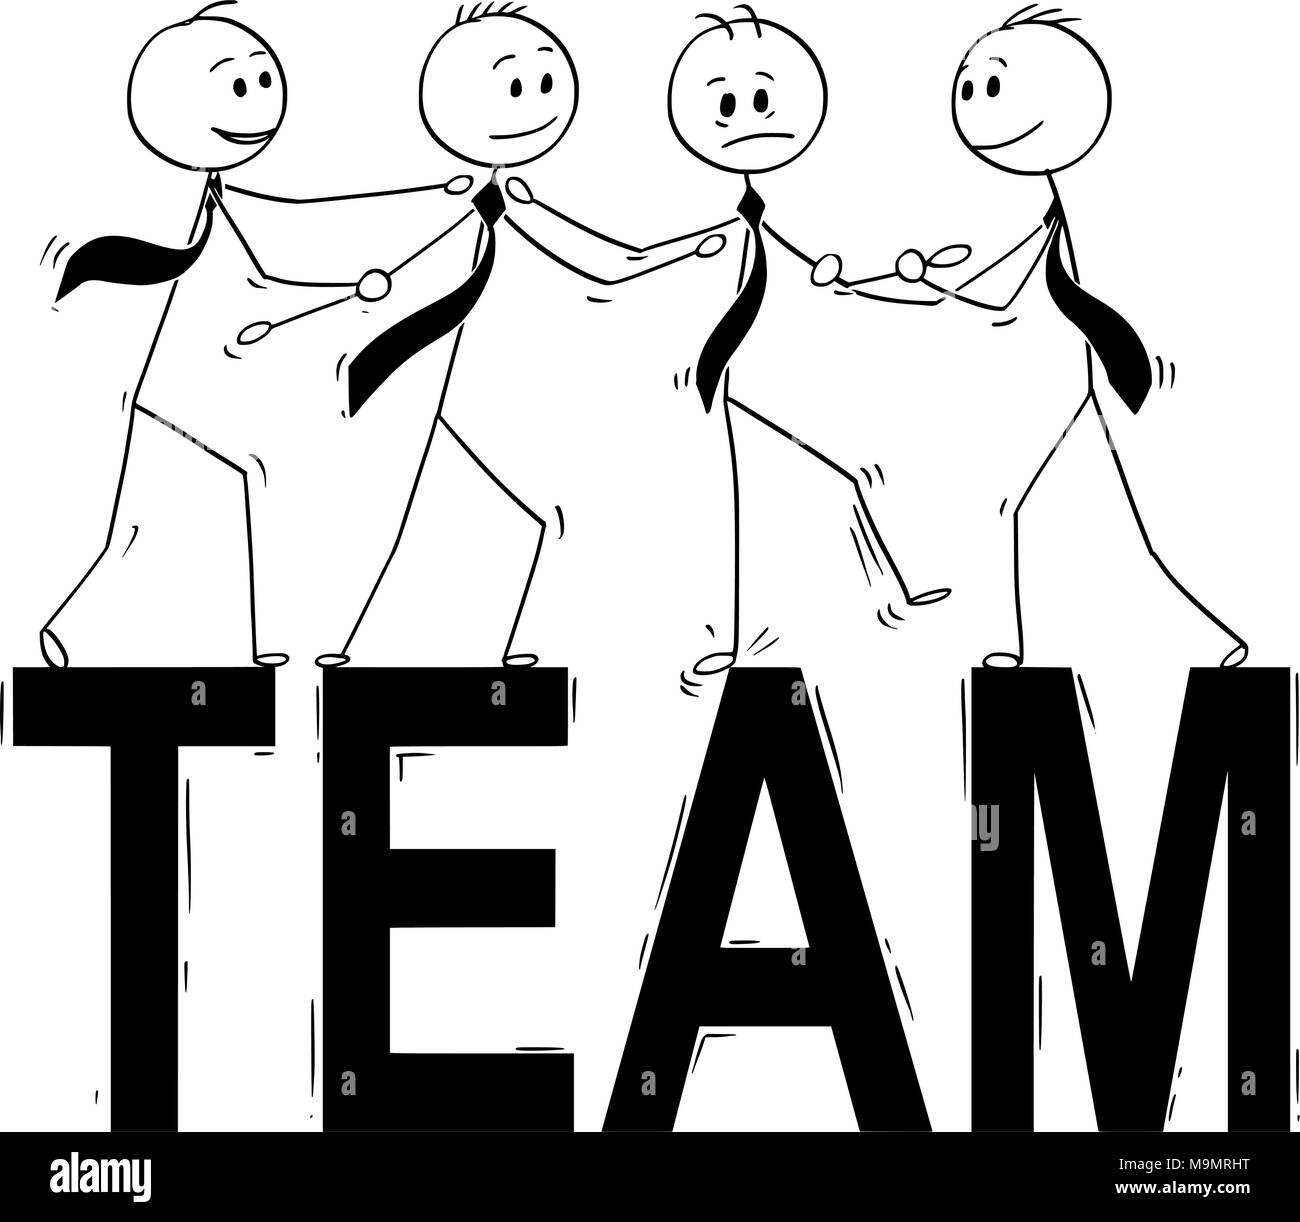 Helping Each Other: Cartoon Of Team Business People Helping Each Other To